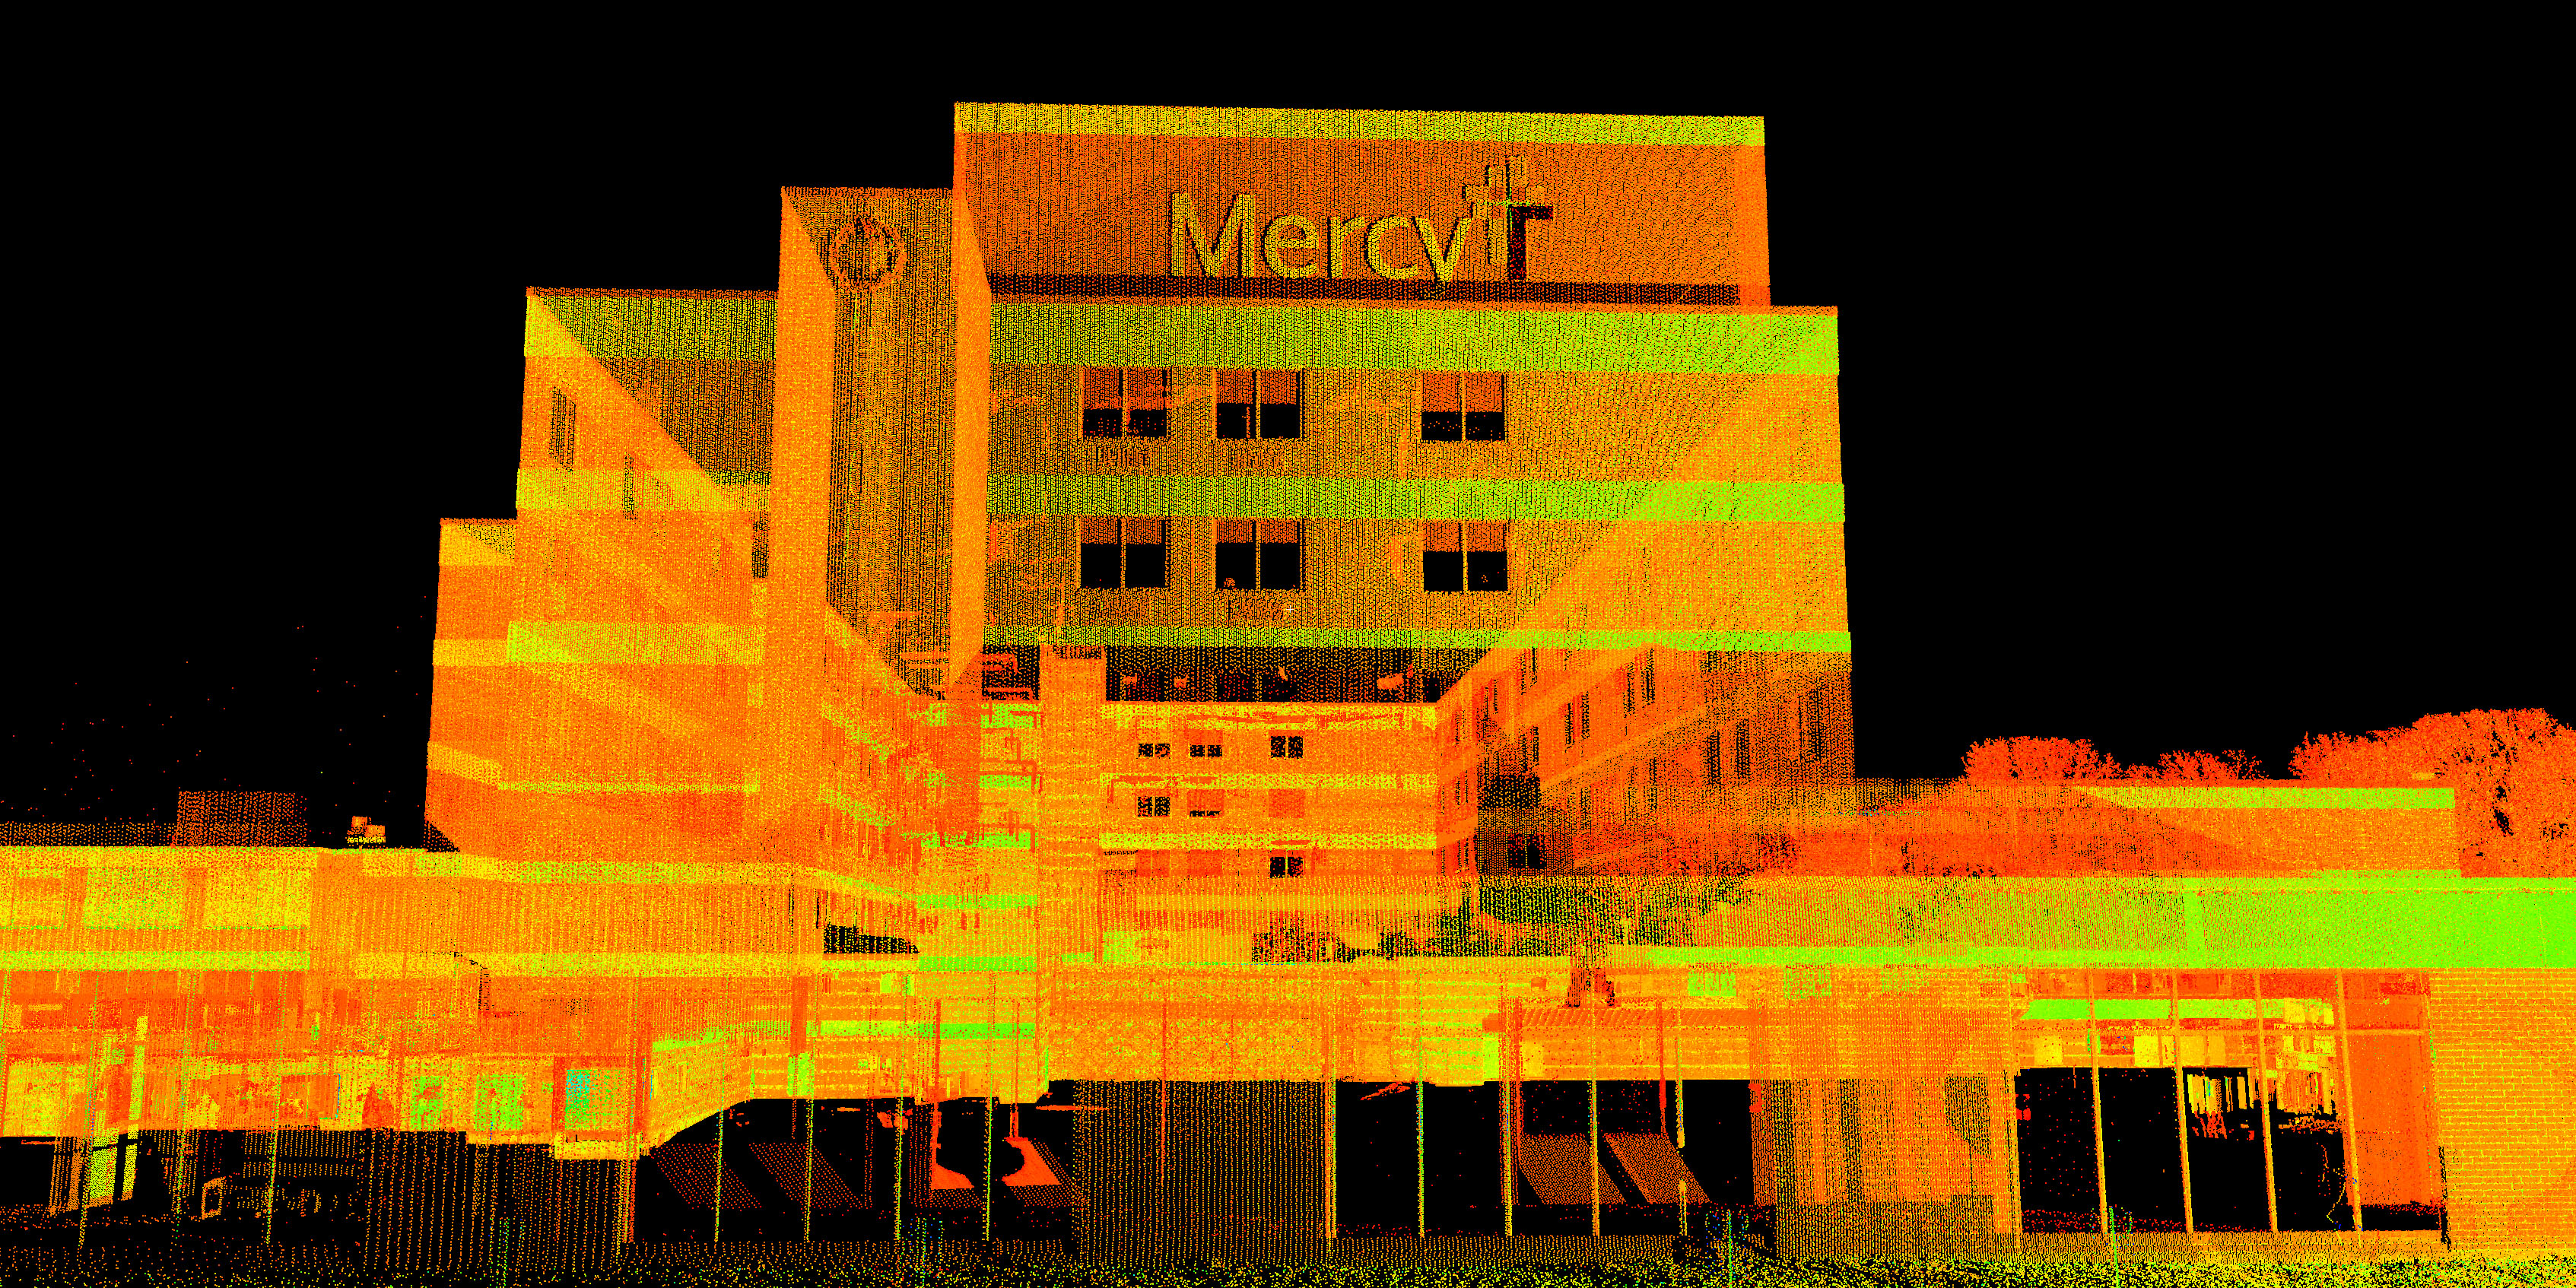 Hospital 3D Laser Scanning - Healthcare Engineering - TWM, Inc.